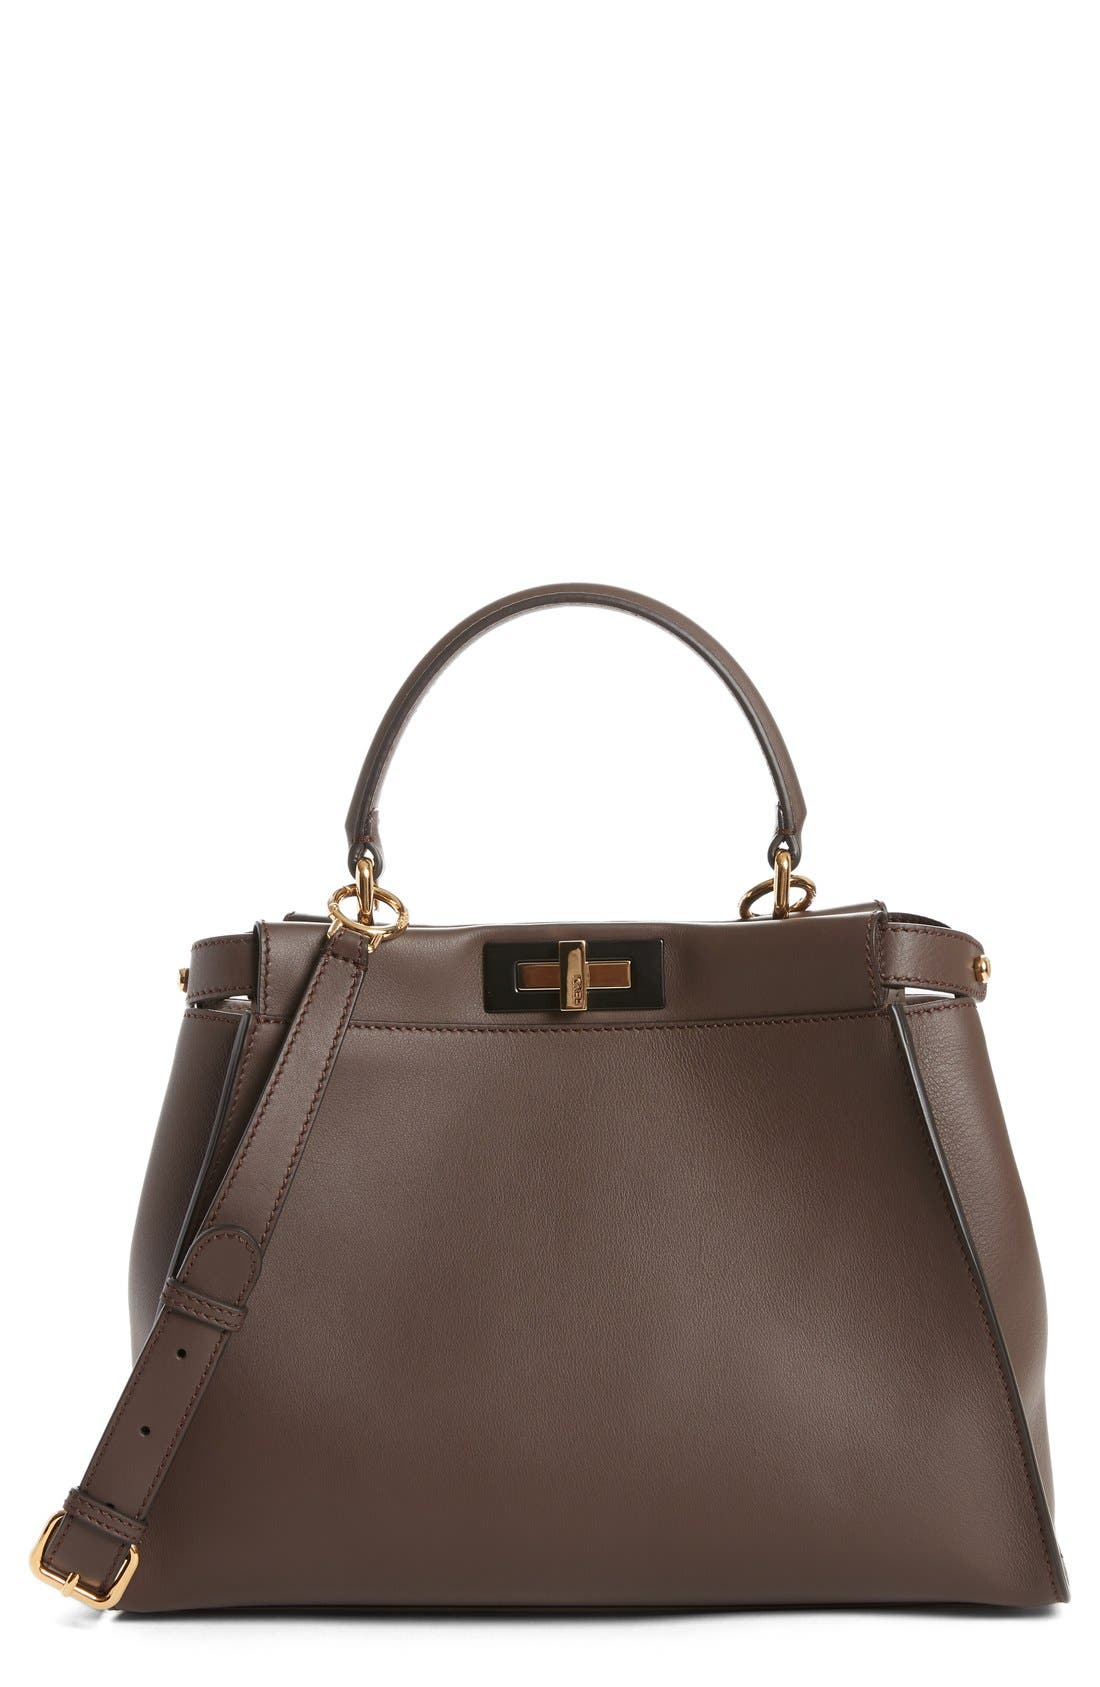 FENDI Peek-A-Boo Medium Crossbody Bag